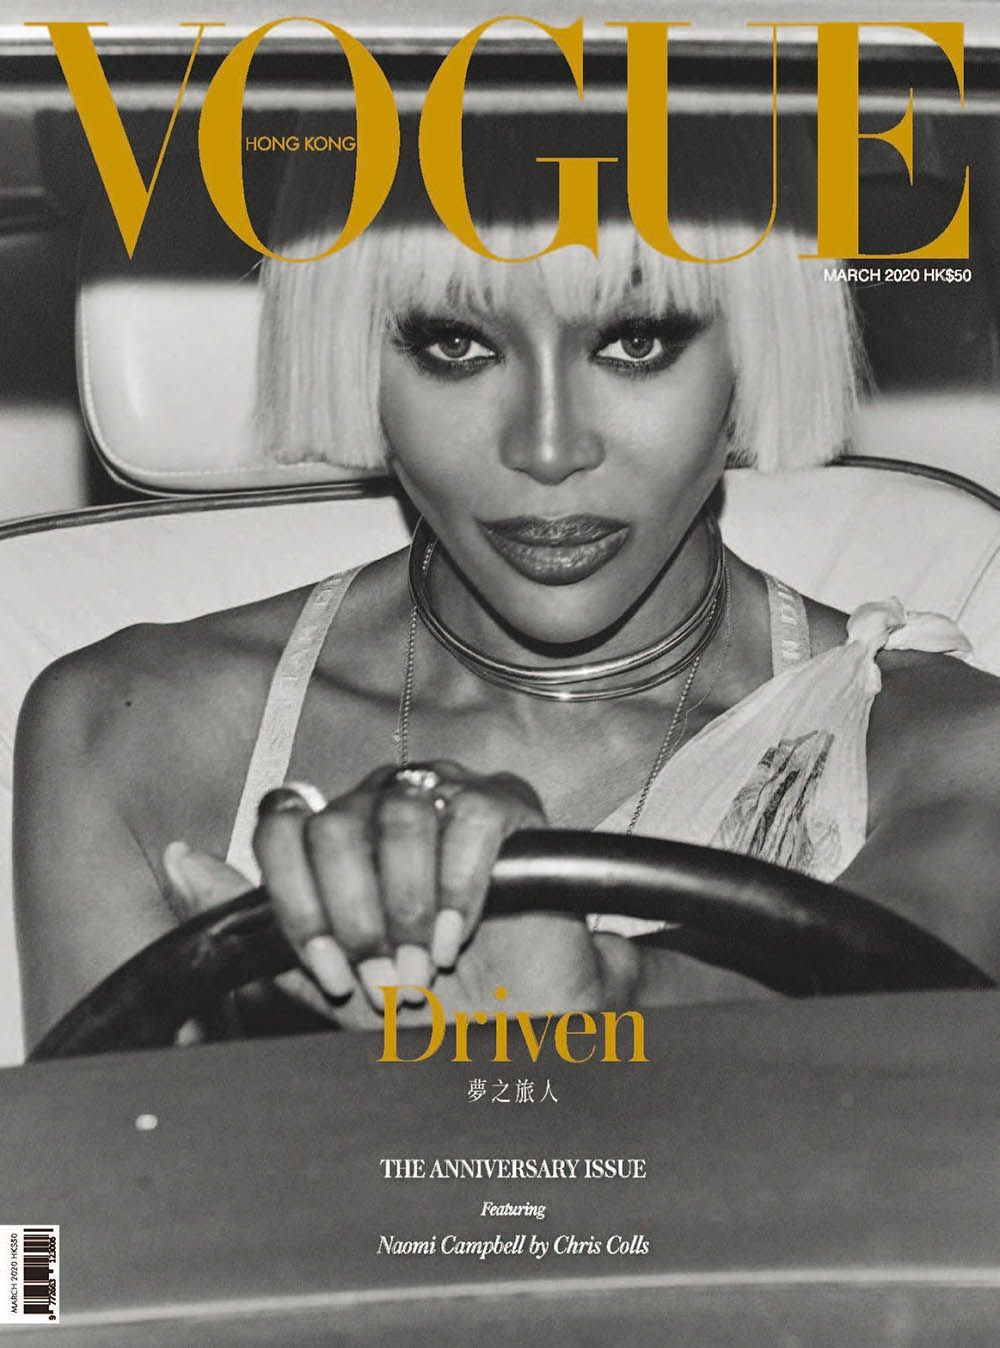 Naomi Campbell covers Vogue Hong Kong March 2020 by Chris